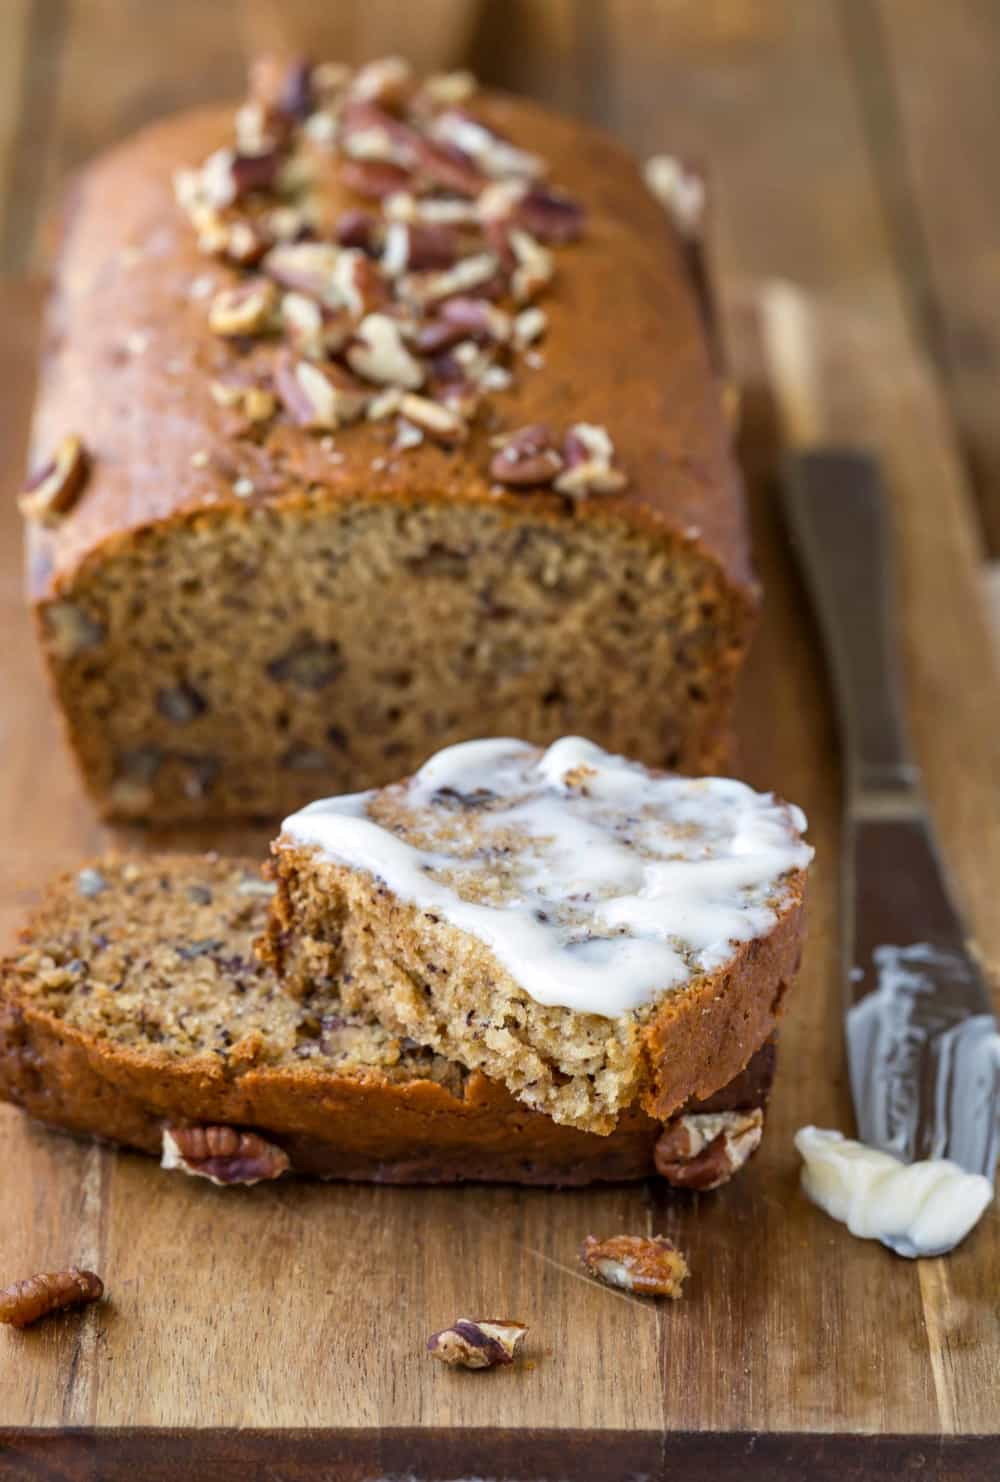 Recipe For Banana Bread  Banana Nut Bread Recipe I Heart Eating